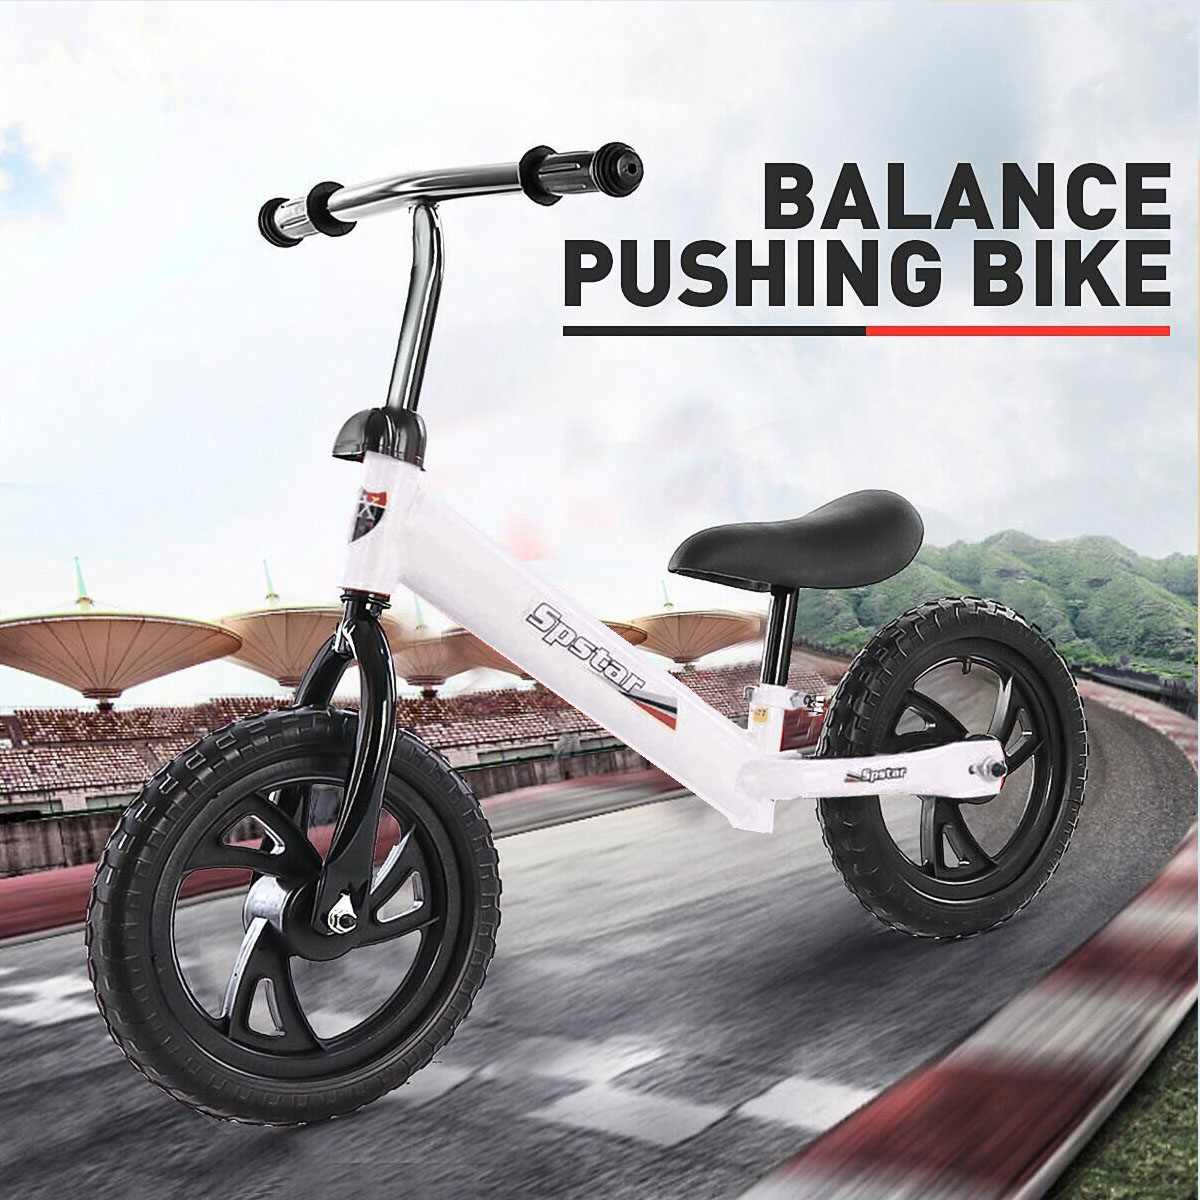 Balance Bike Bicycle Model Outdoor Toys For 2-6 Years Old Children Two Wheel Scooter No Foot Pedal Kids Push Educational Sport